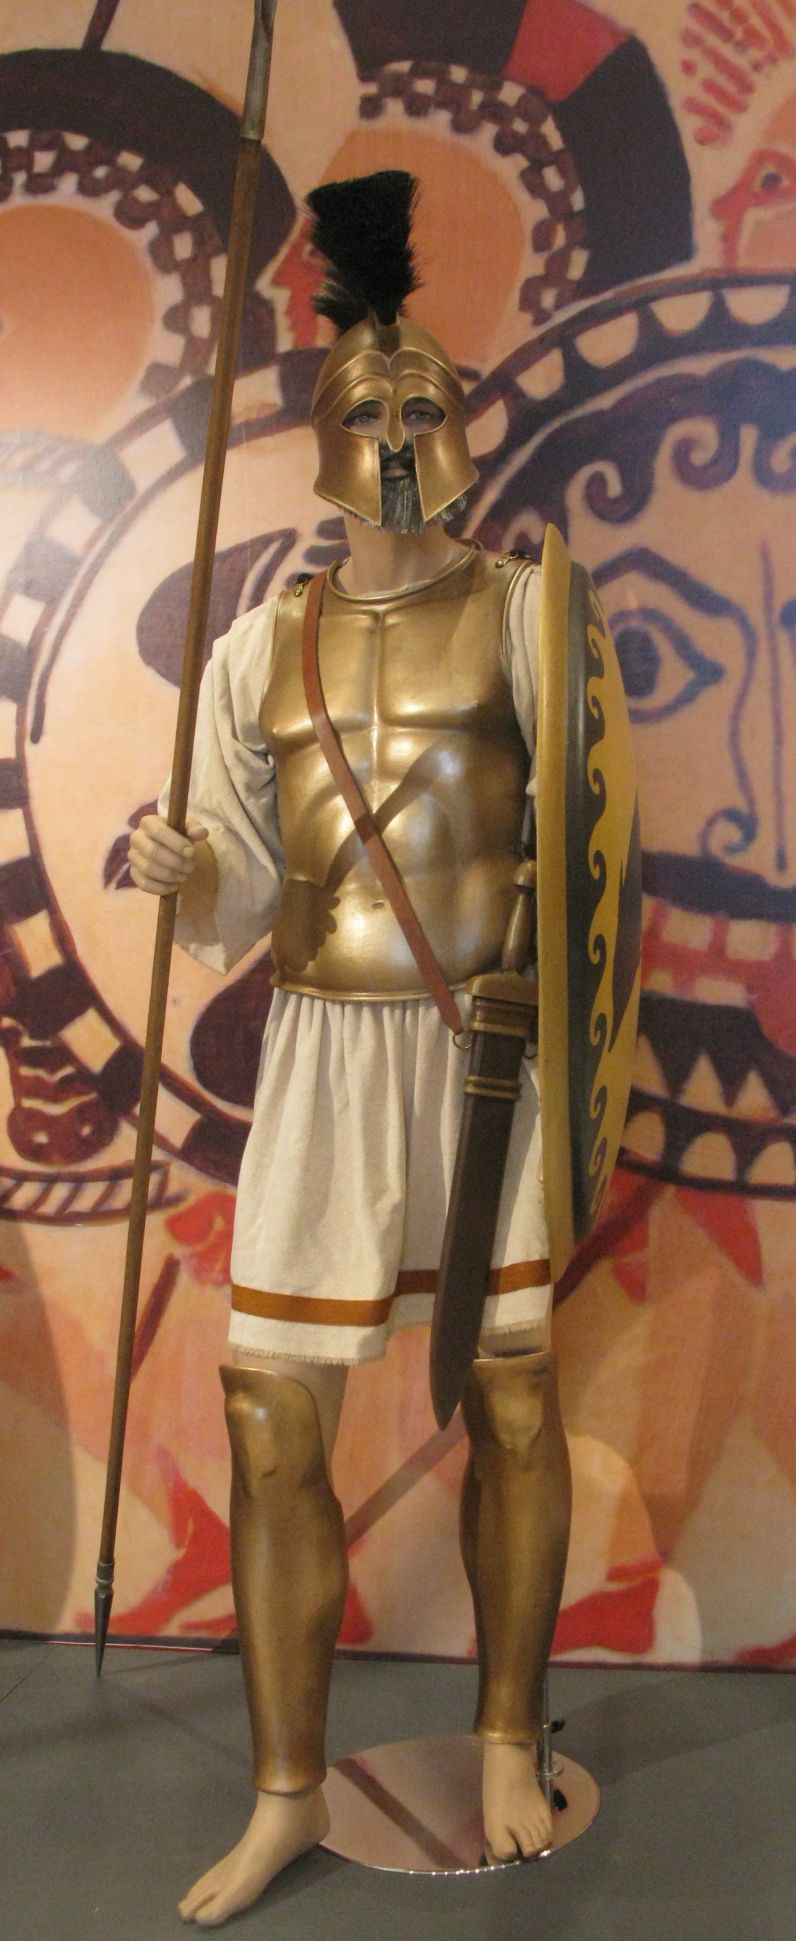 Greek Hoplite - Credit https://upload.wikimedia.org/wikipedia/commons/6/69/Athenian_hoplite.jpg